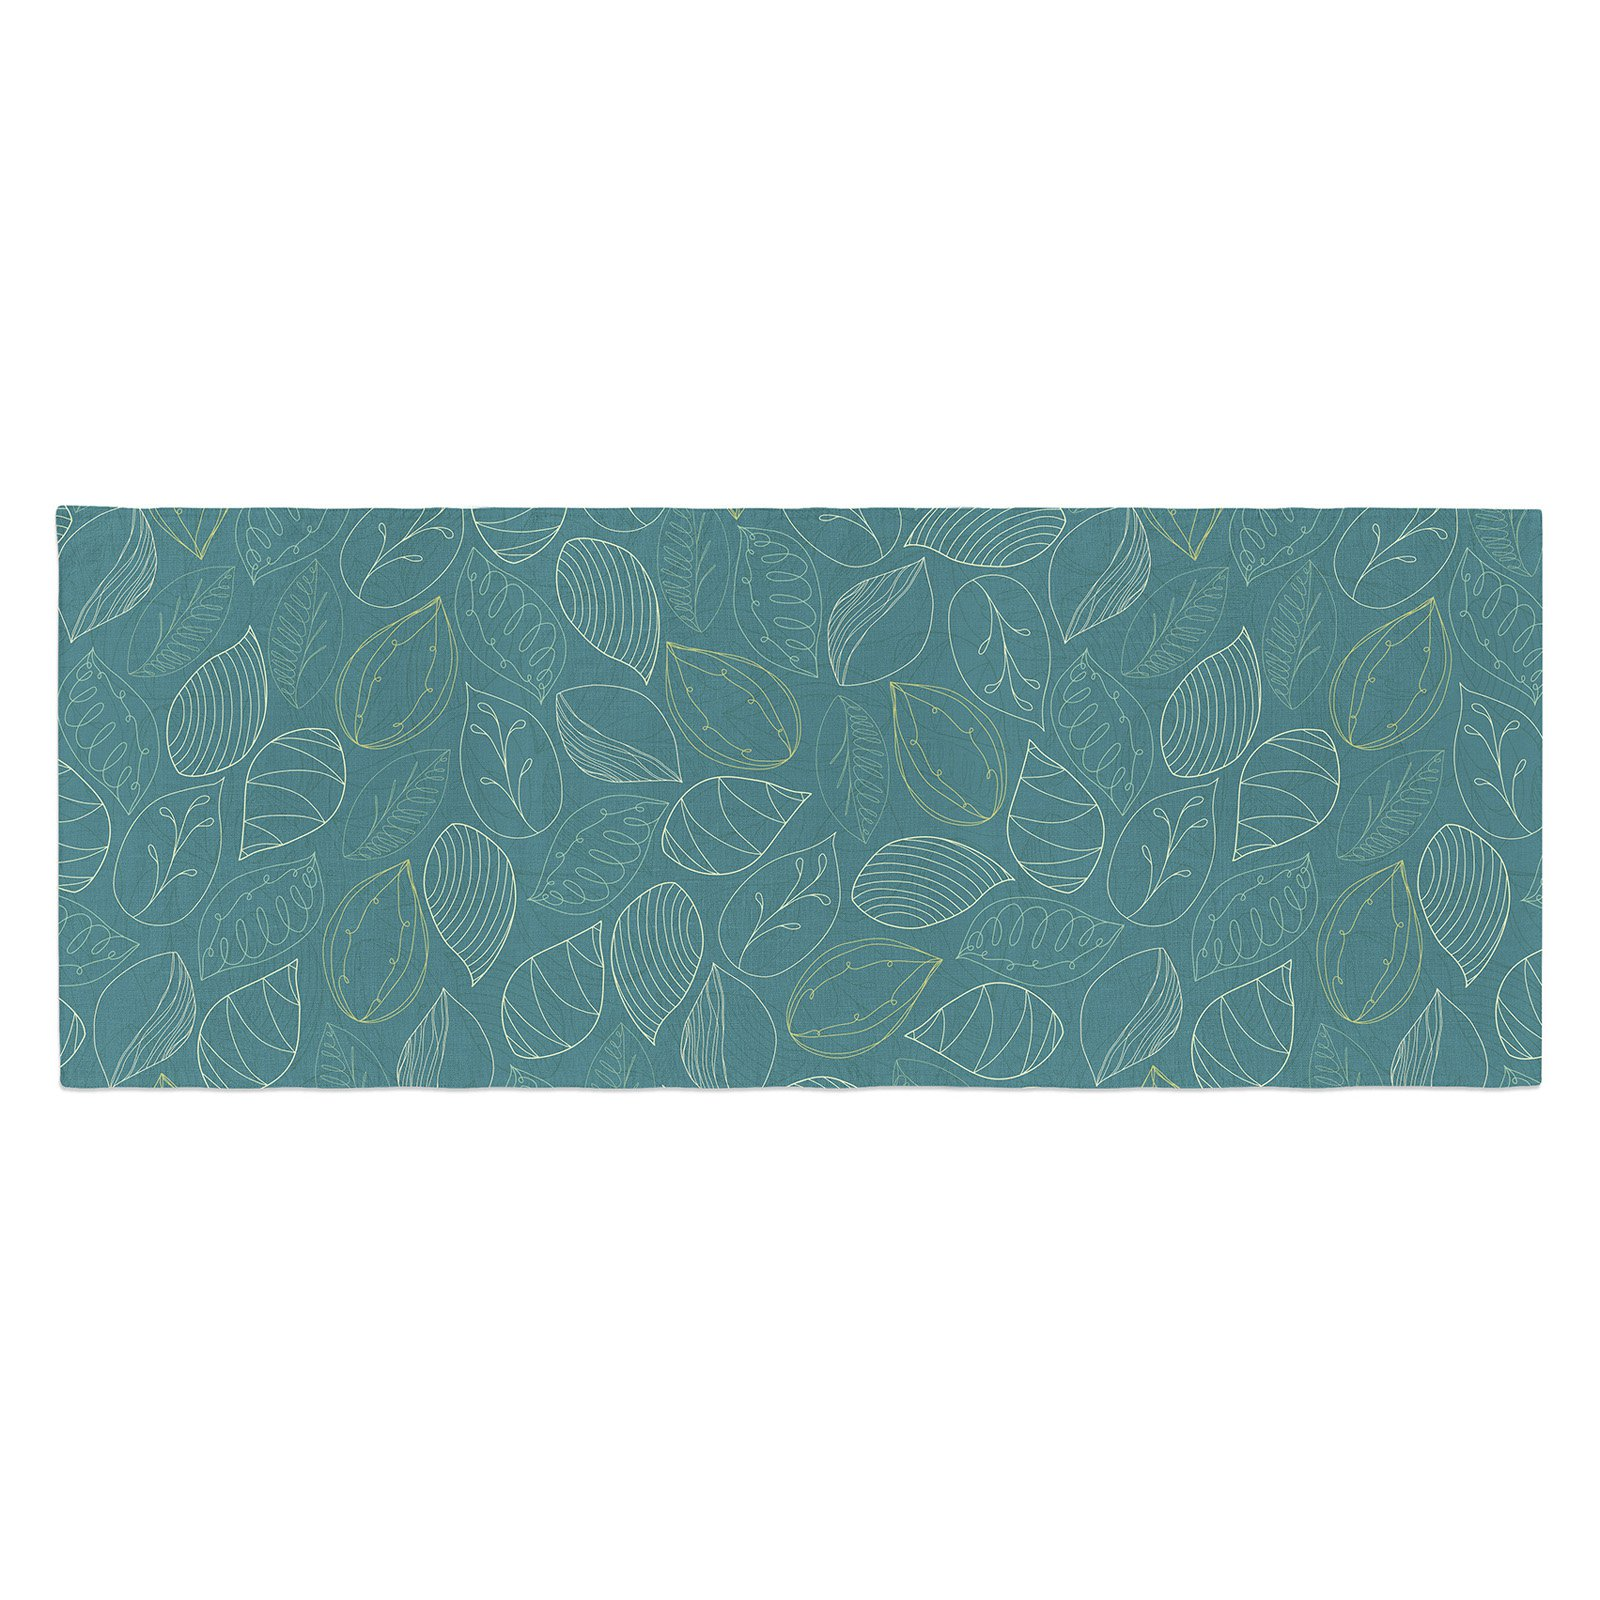 Emma Frances Autumn Leaves Bed Runner by Kess InHouse